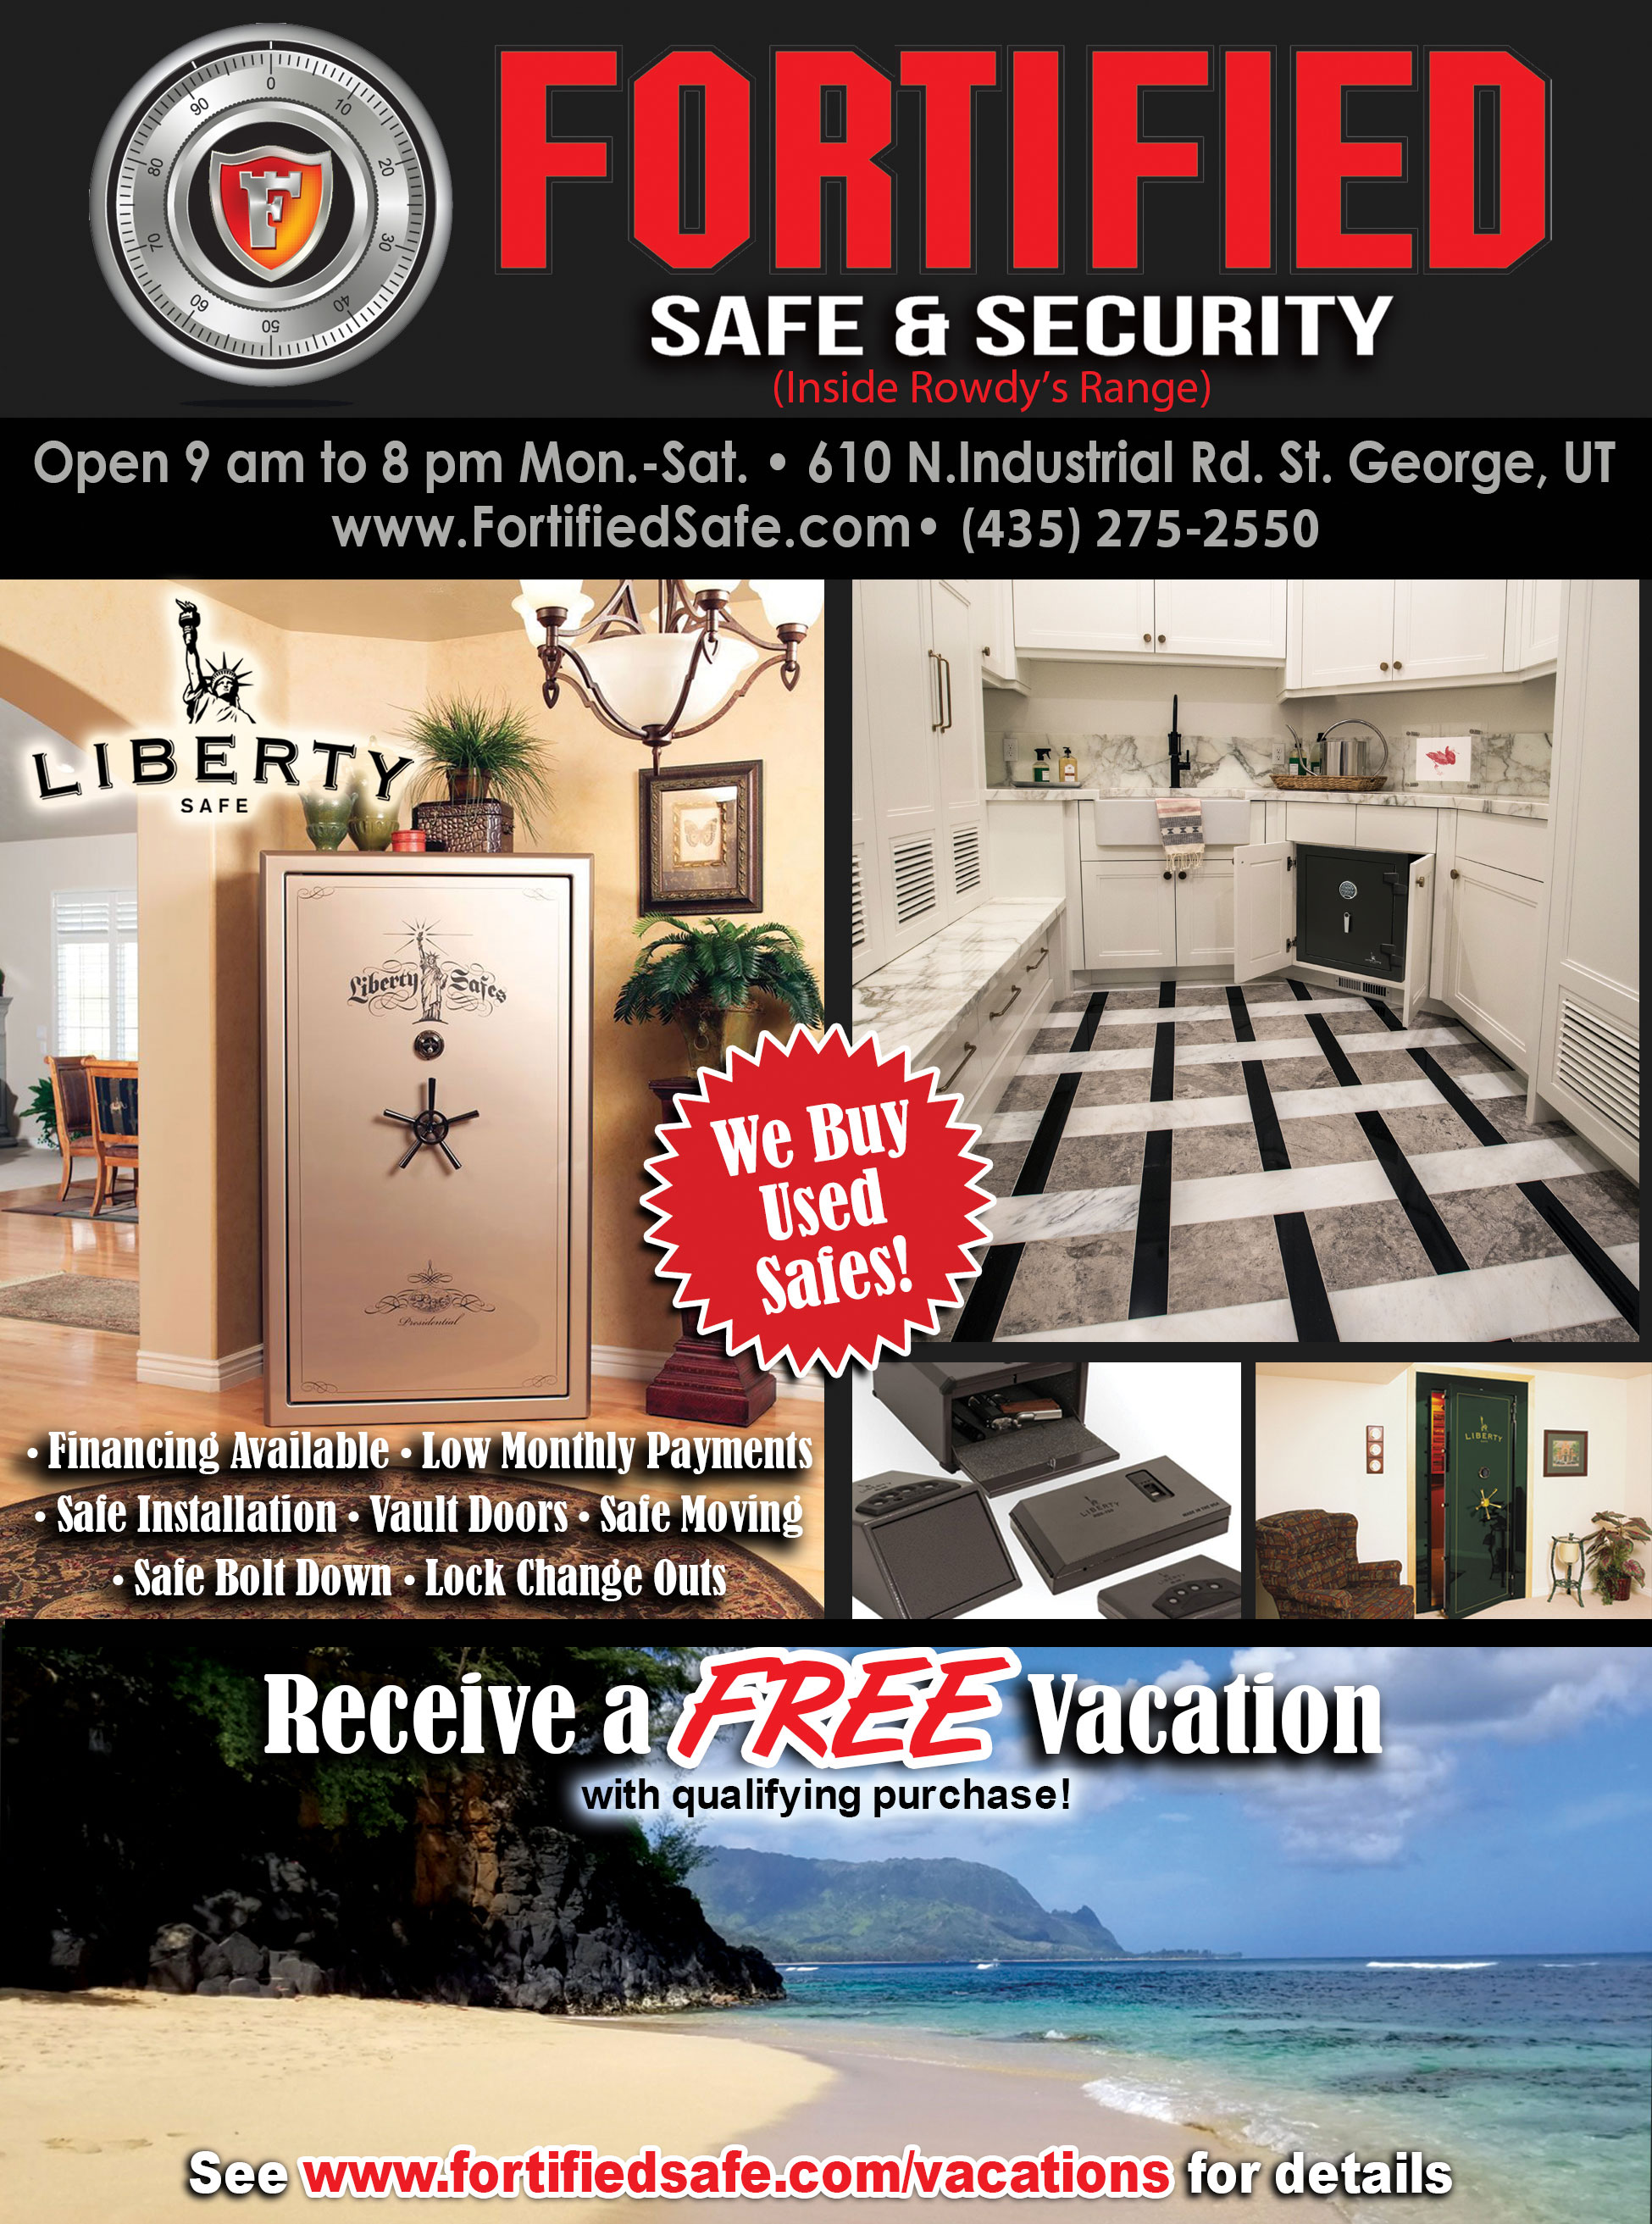 Fortified Safe and security